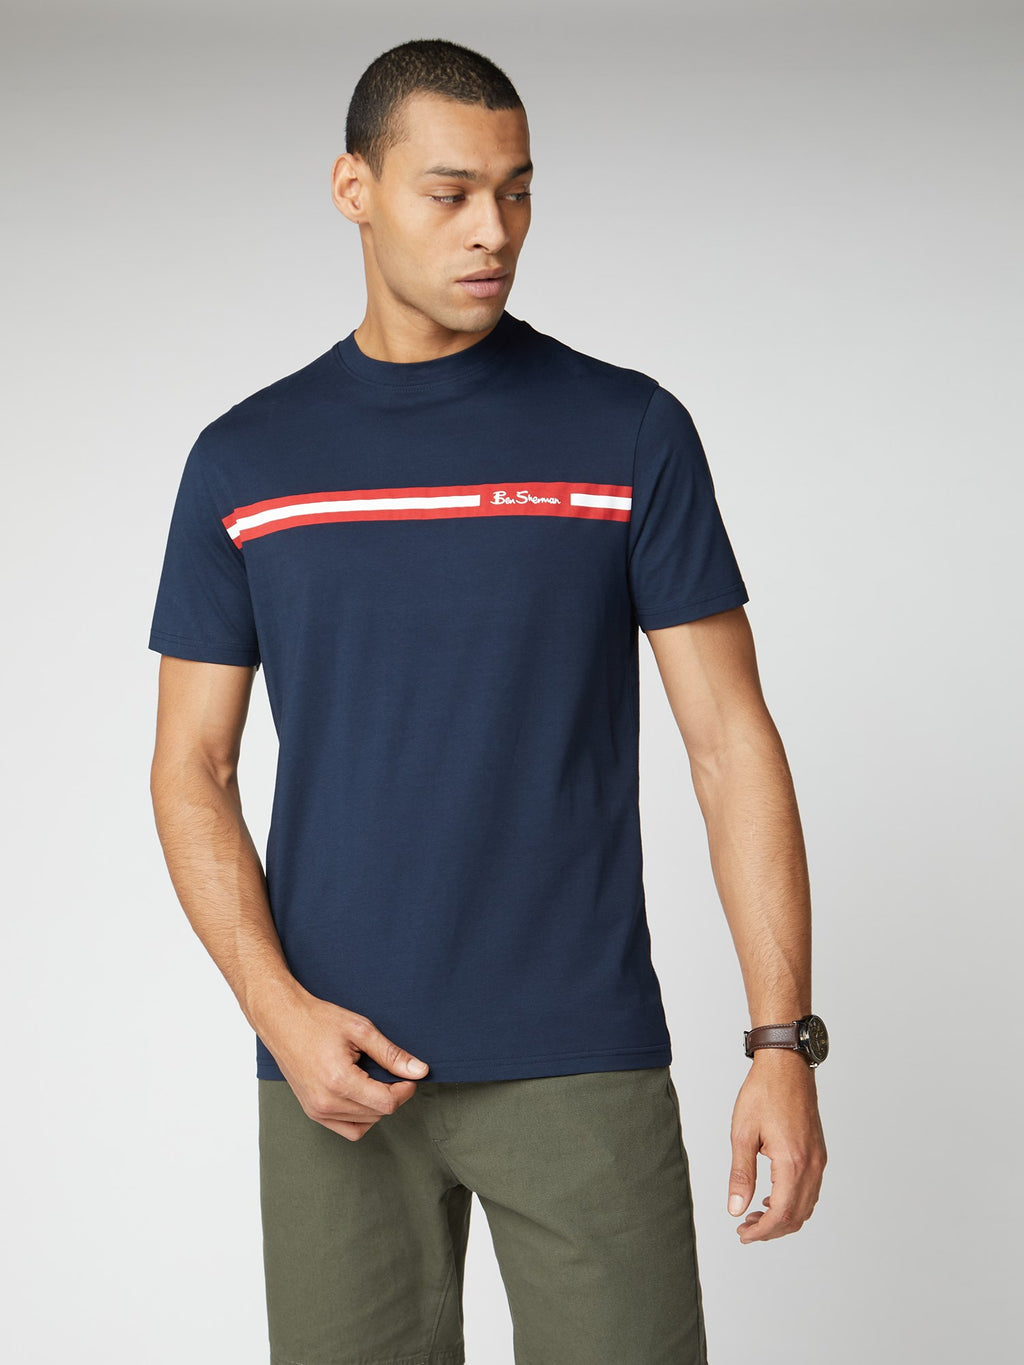 Ben Sherman Printed Chest Strip Tee